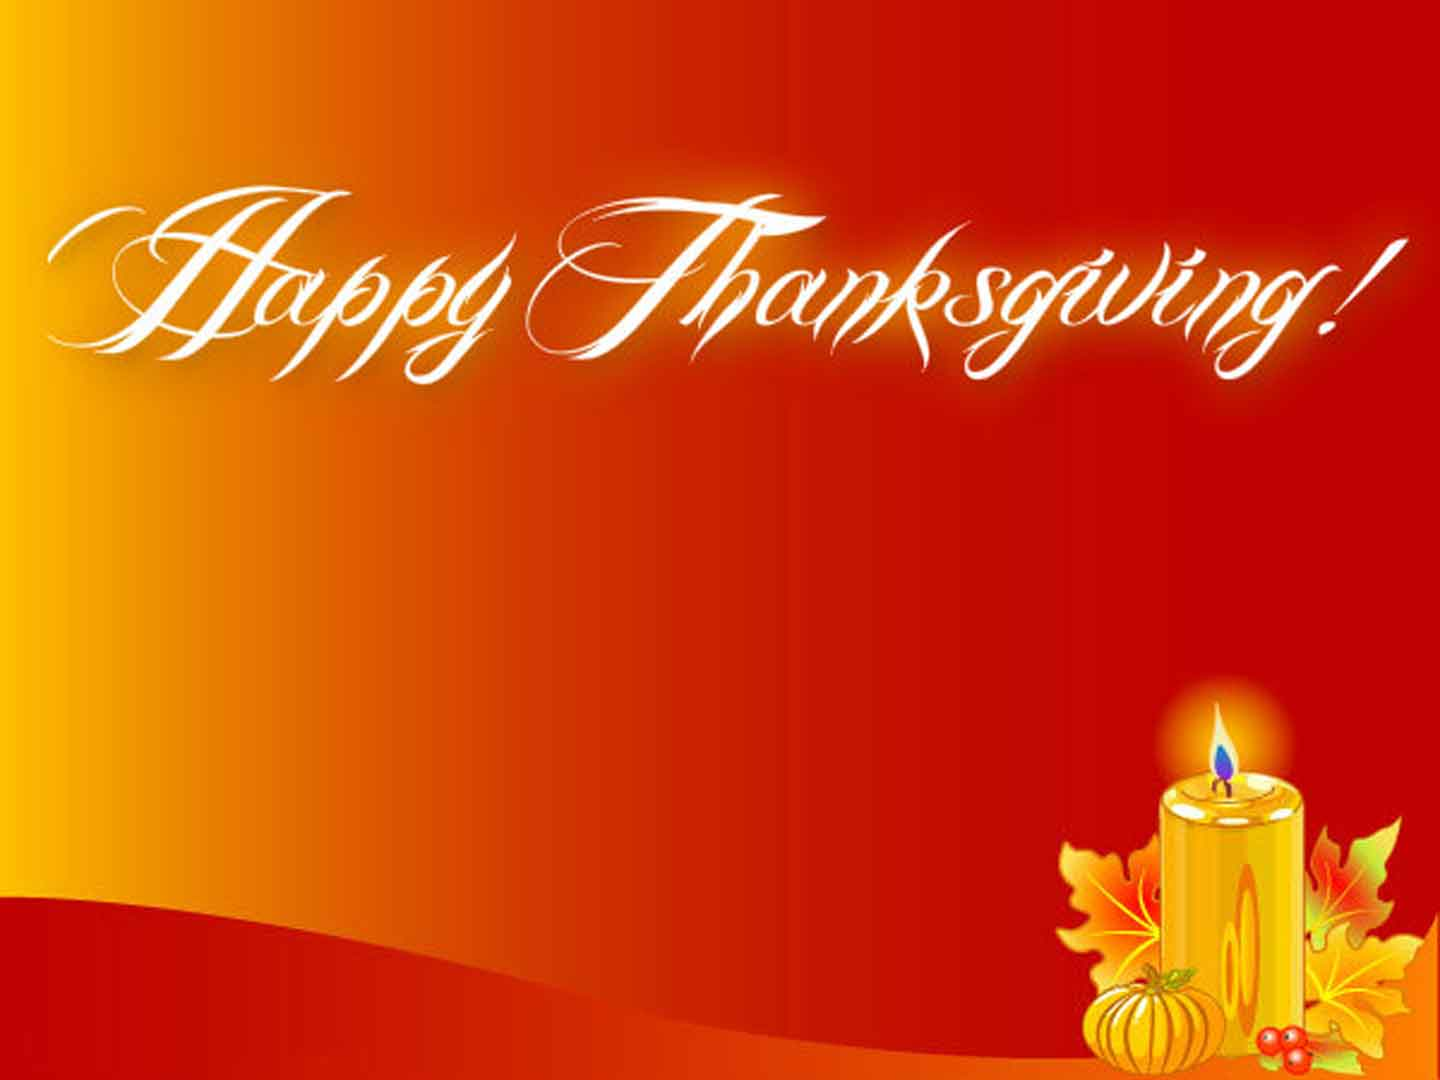 Happy Thanksgiving HD Wallpapers, Image 2014